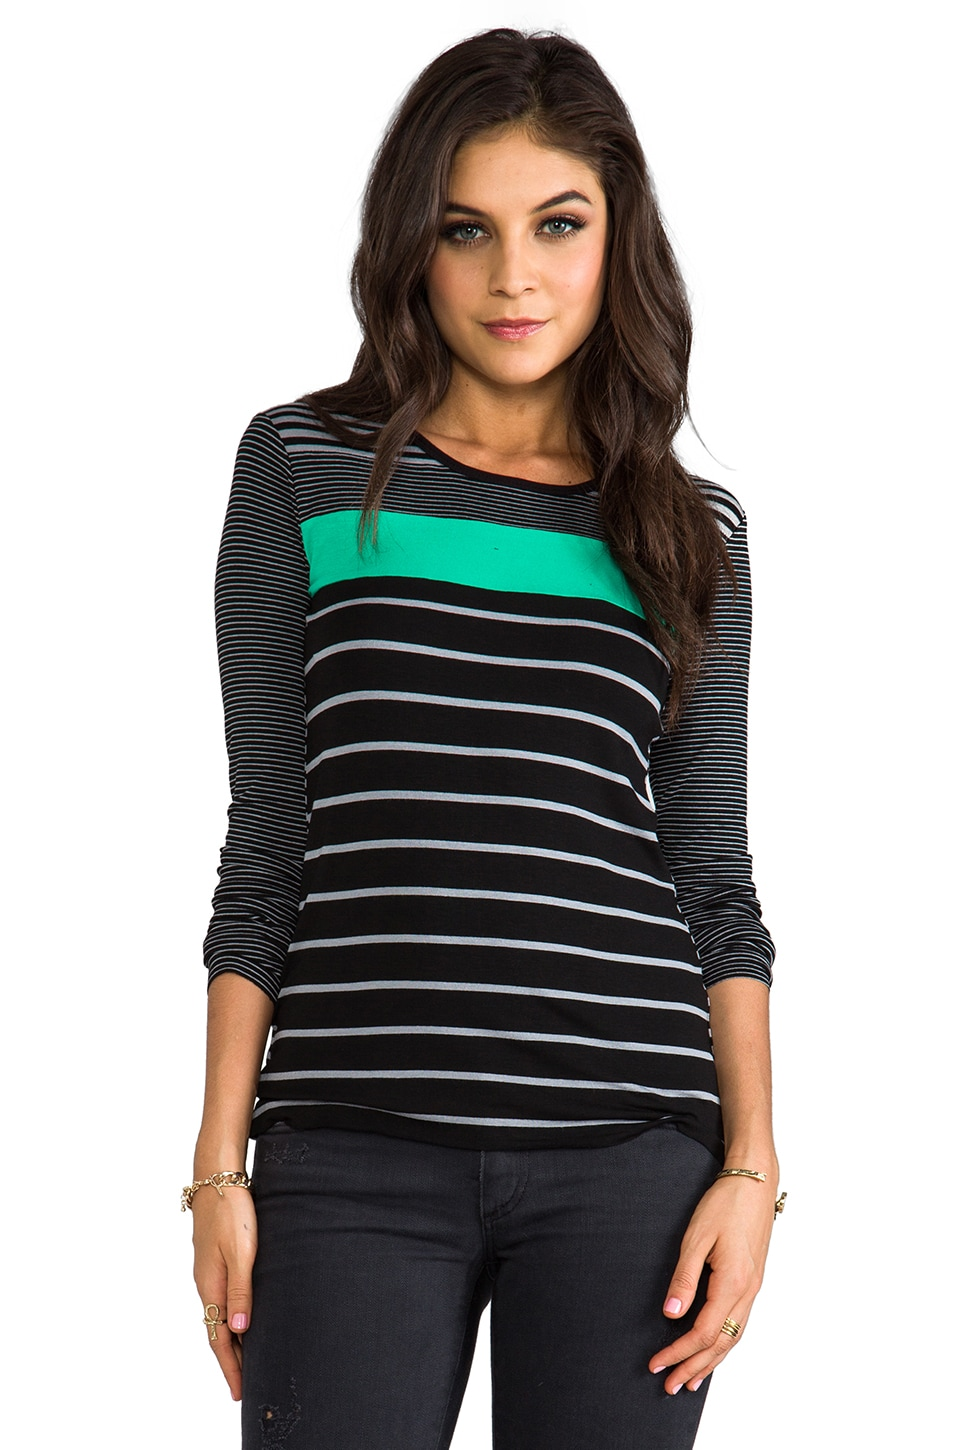 Bailey 44 Neptune Top in Black/Silver/Green